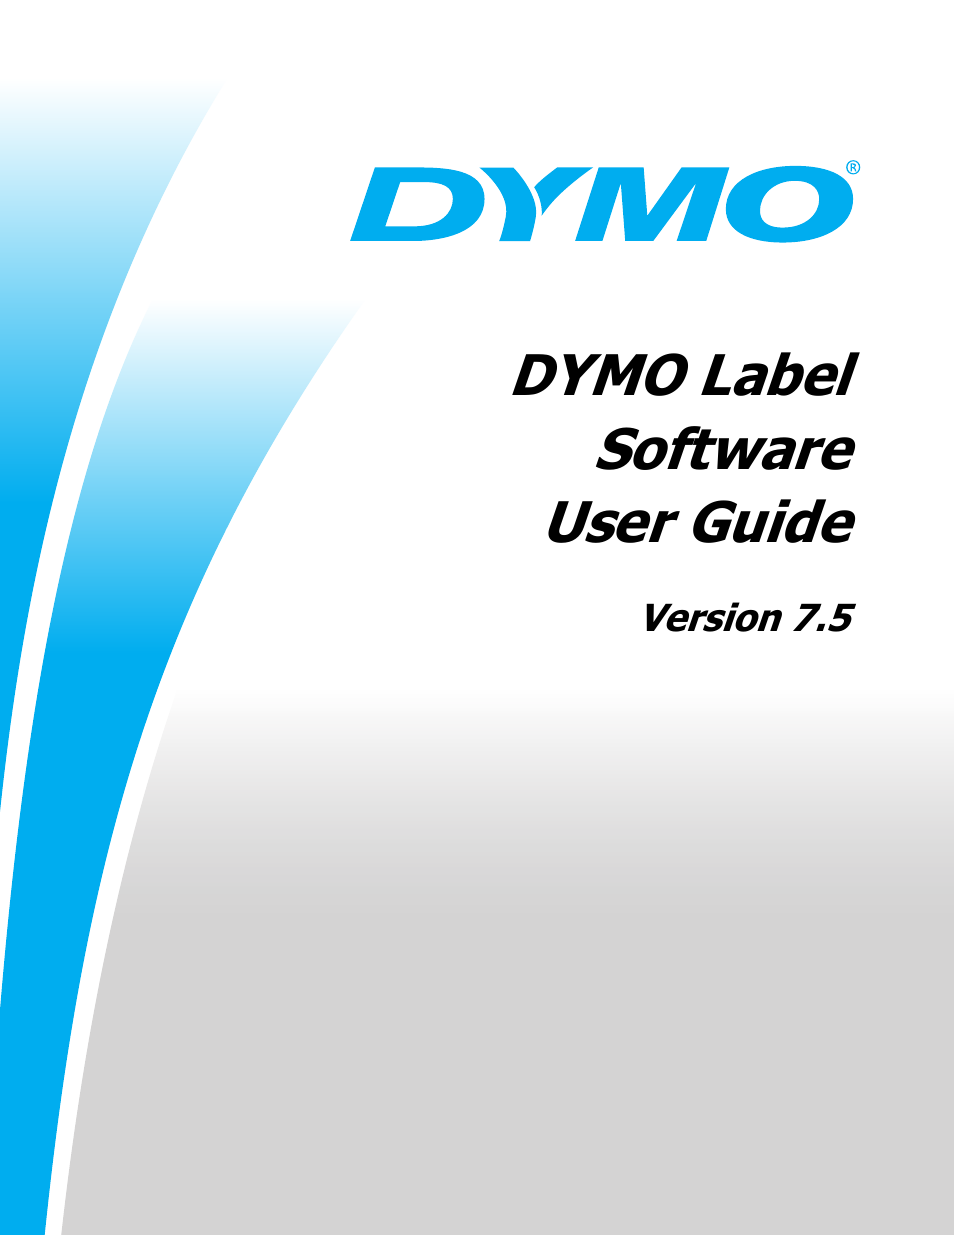 Dymo LabelWriter 400 Turbo User Manual | 54 pages | Also for: LabelWriter  Duo, LABELWRITER 400 TWIN TURBO, LabelWriter 330 Turbo, LABELWRITER 300